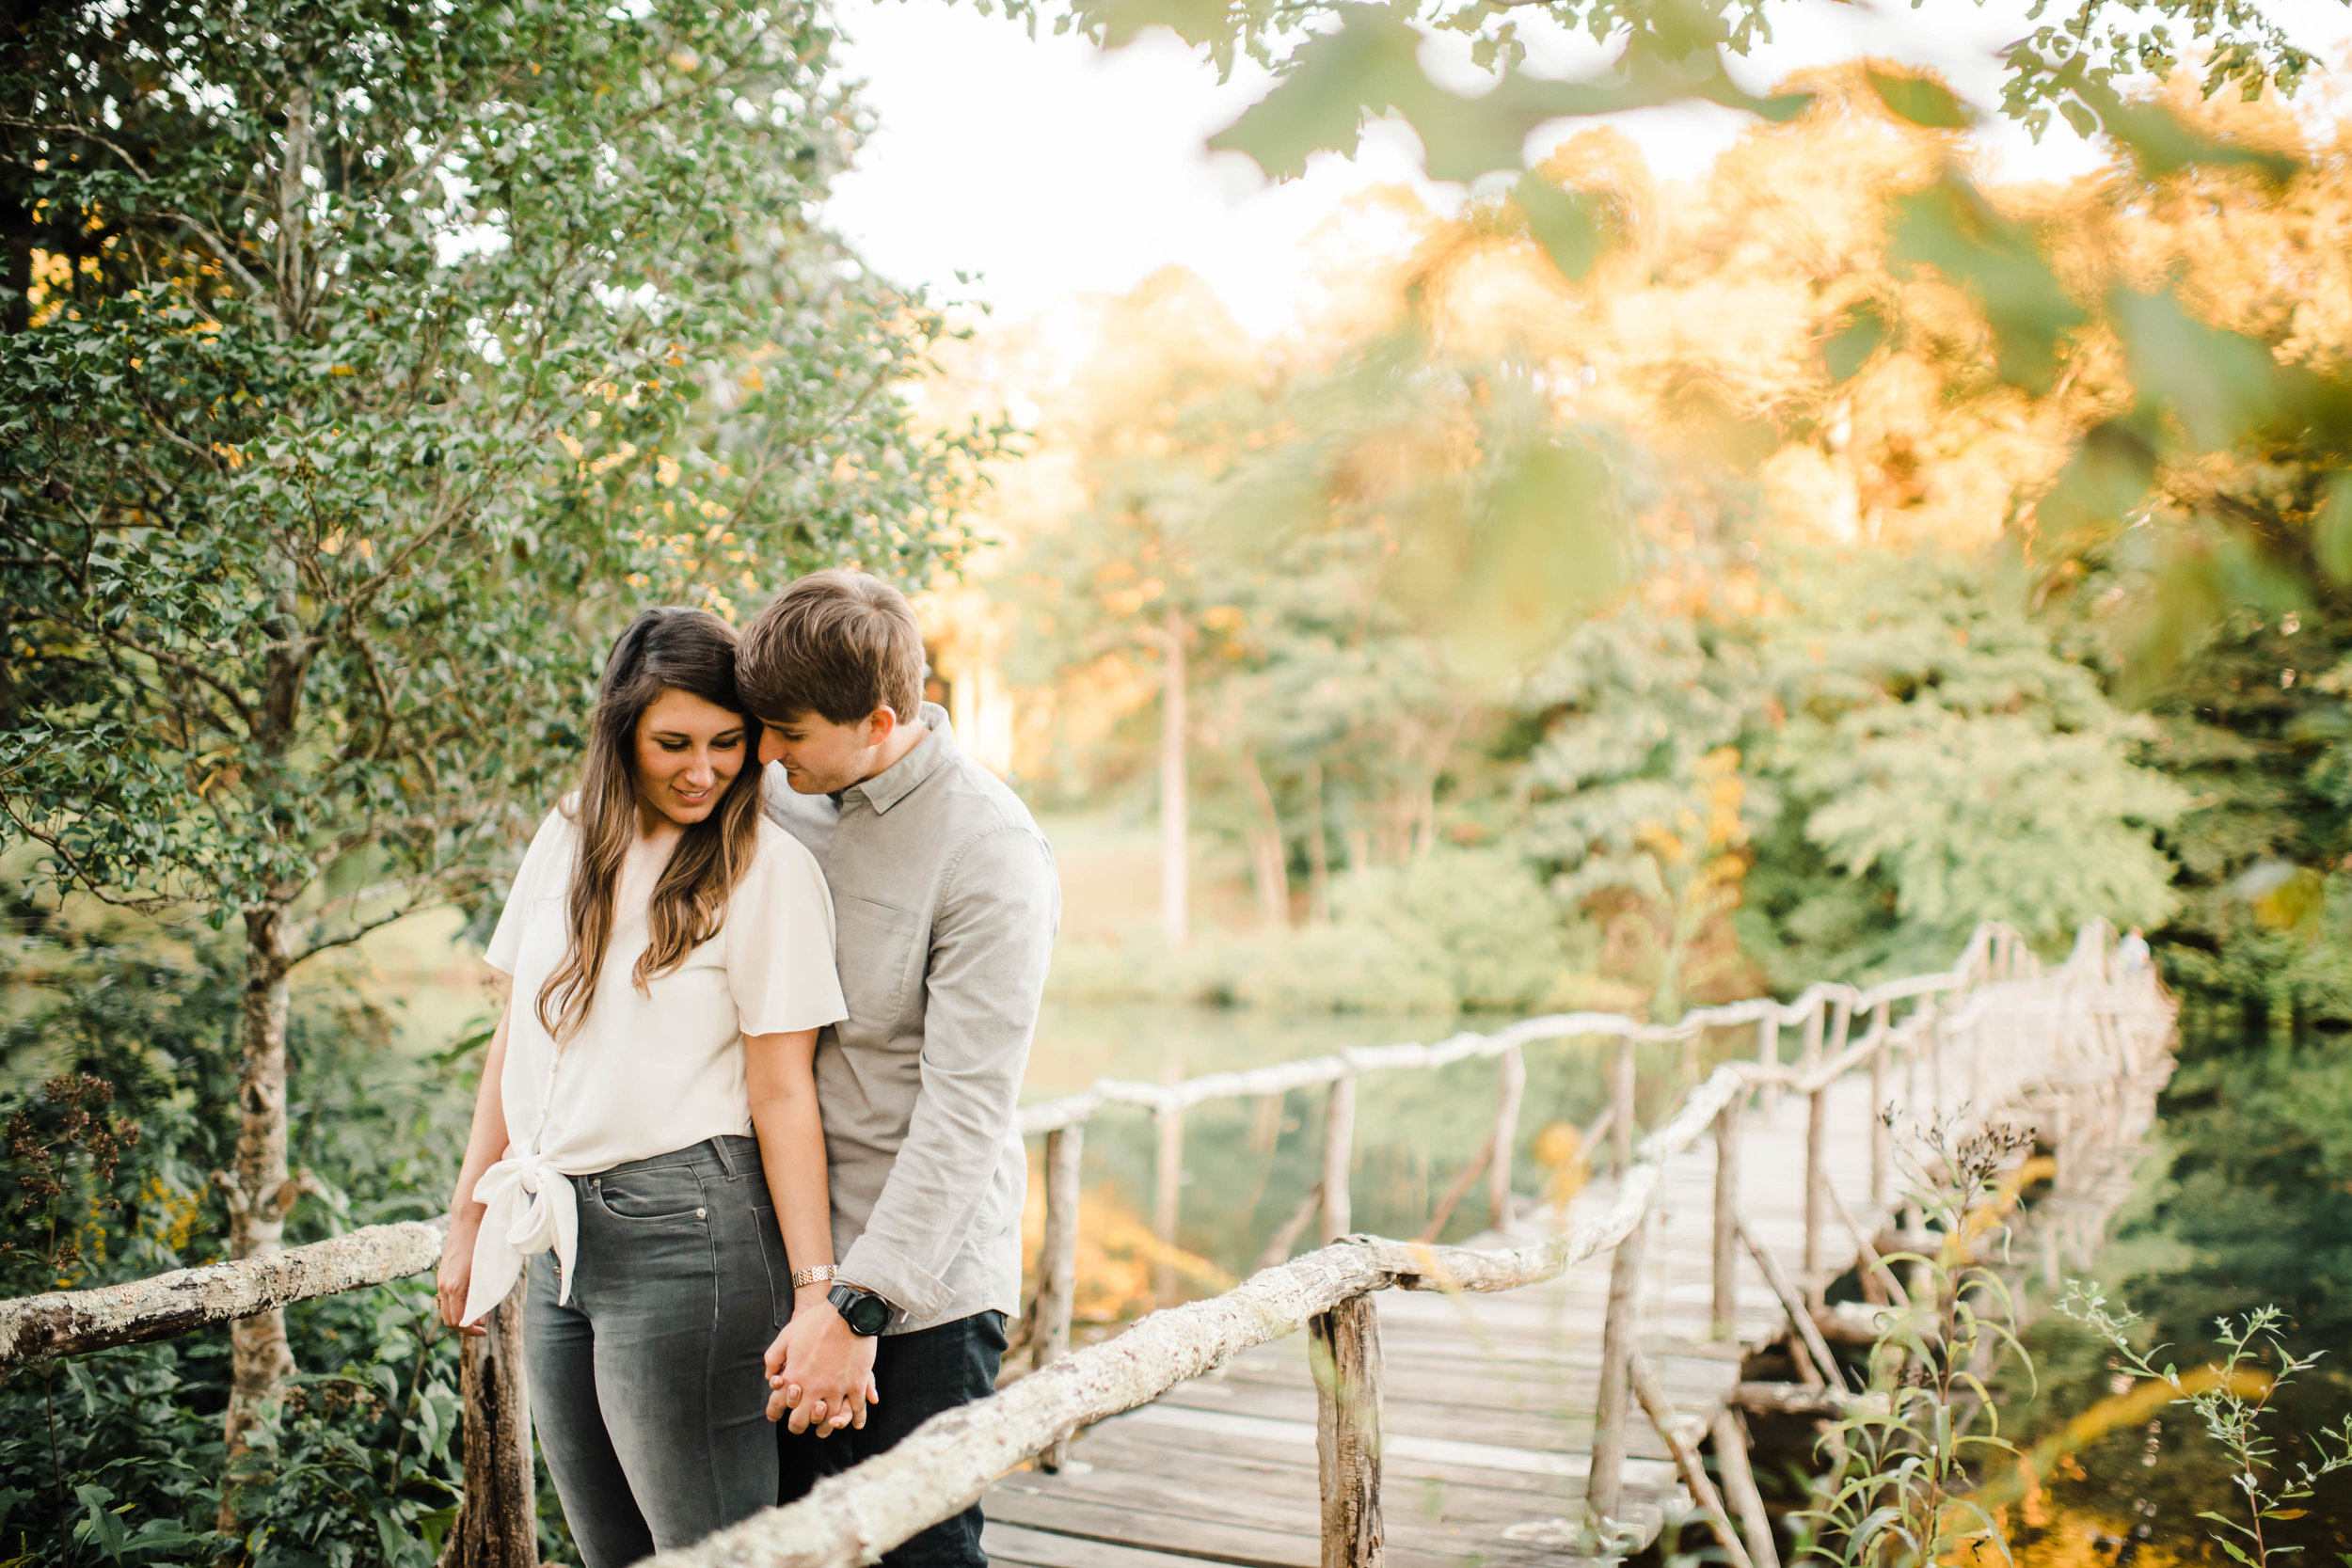 san francisco oakland bay area california sf atlanta georgia camp wes anderson moonrise kingdom inspired canoe engagement nontraditional wedding photographer -294.jpg